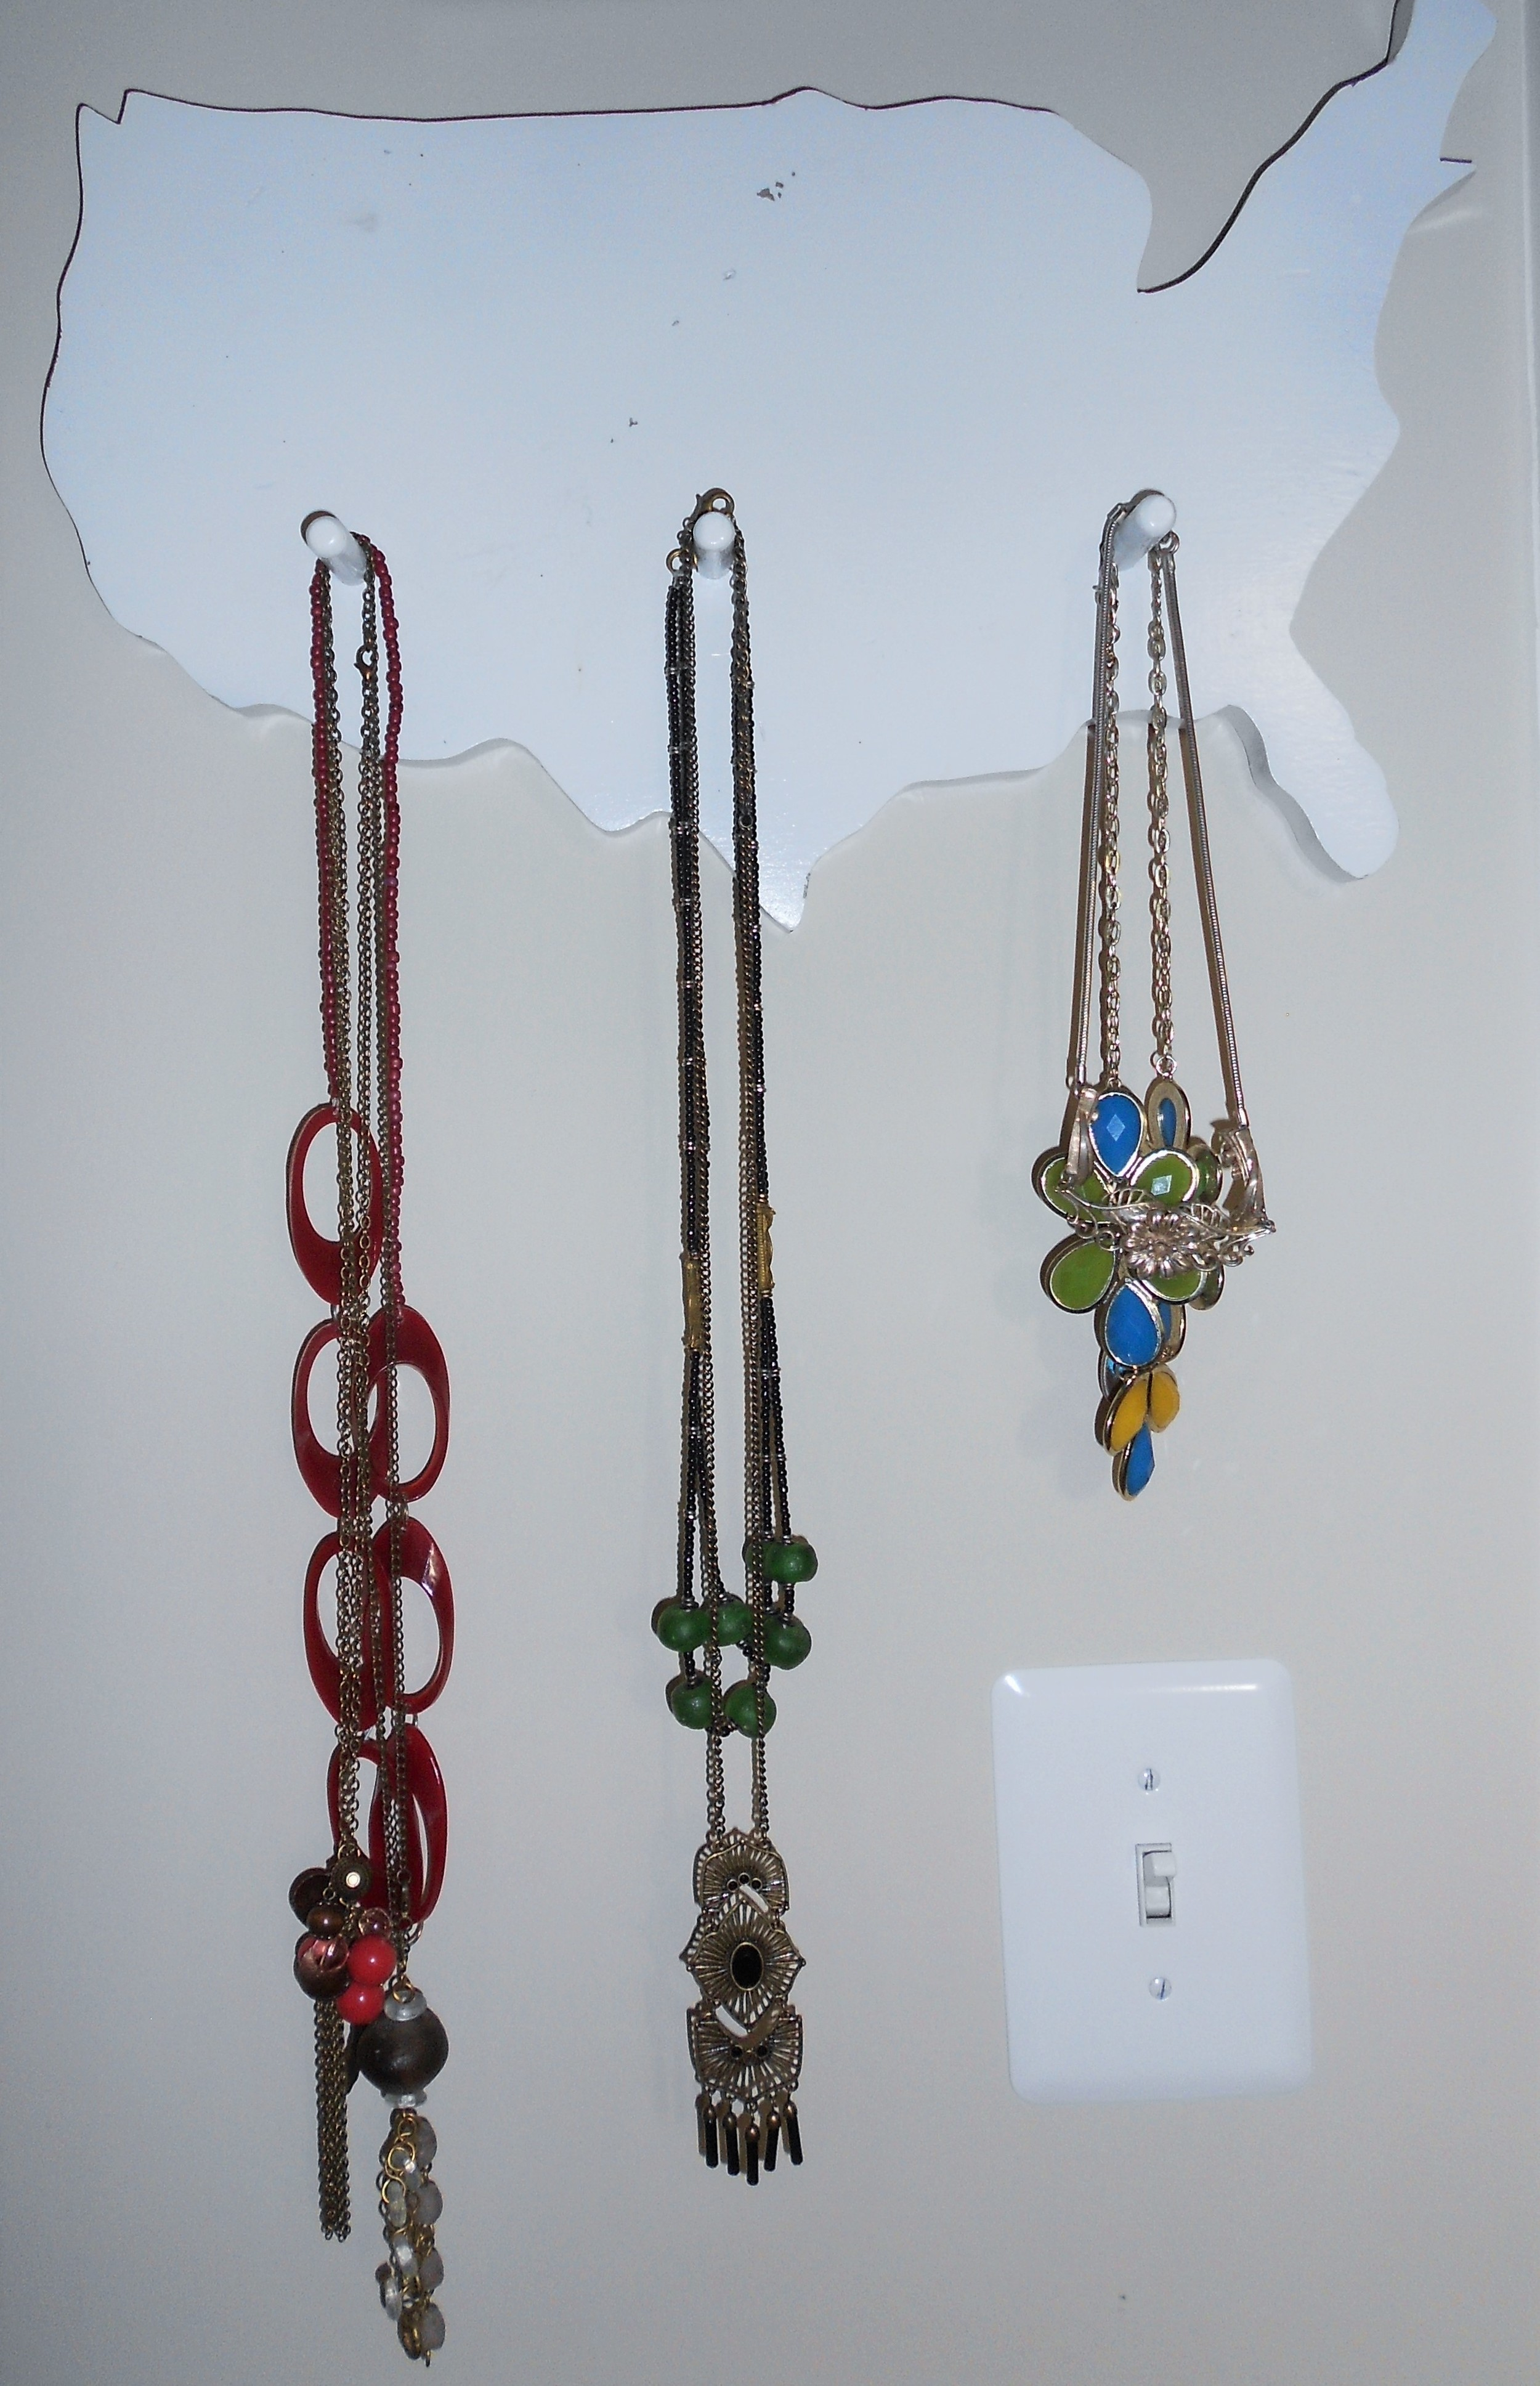 In the realm of small victories - I am extremely happy about my new small(er) collection of necklaces. Now I only make a decision between eight necklaces, instead of 30.